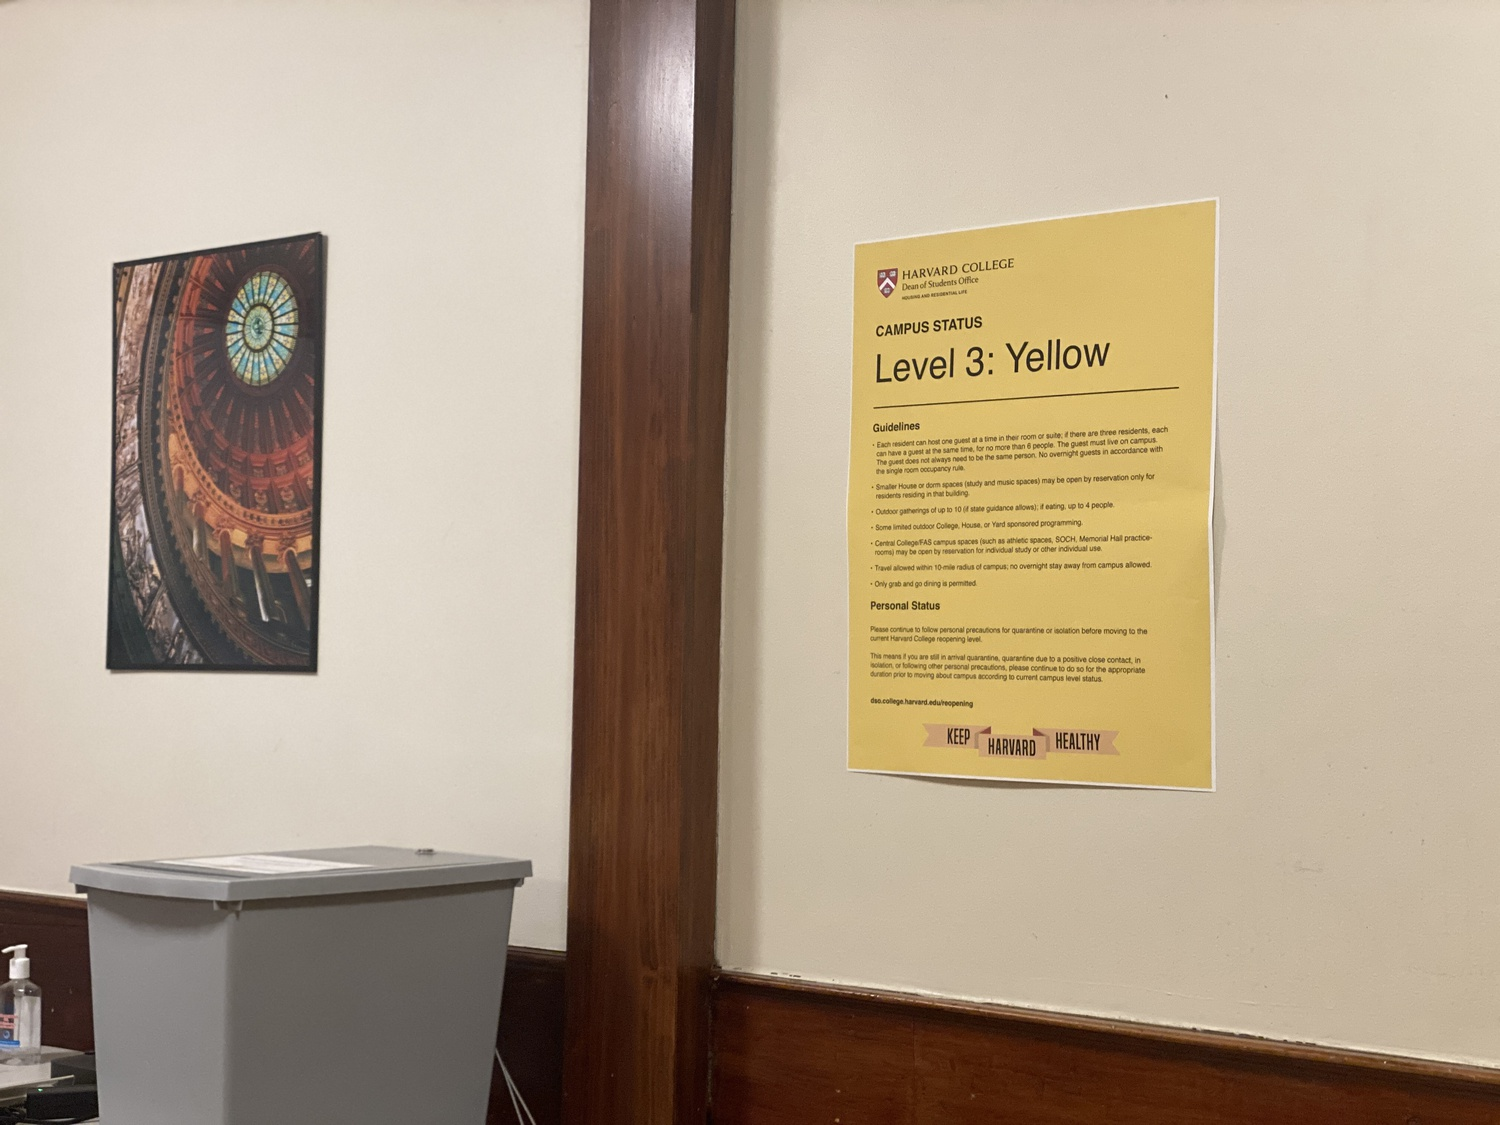 Harvard's campus reopening status entered Phase Yellow on Monday, the third tier of its reopening plan.